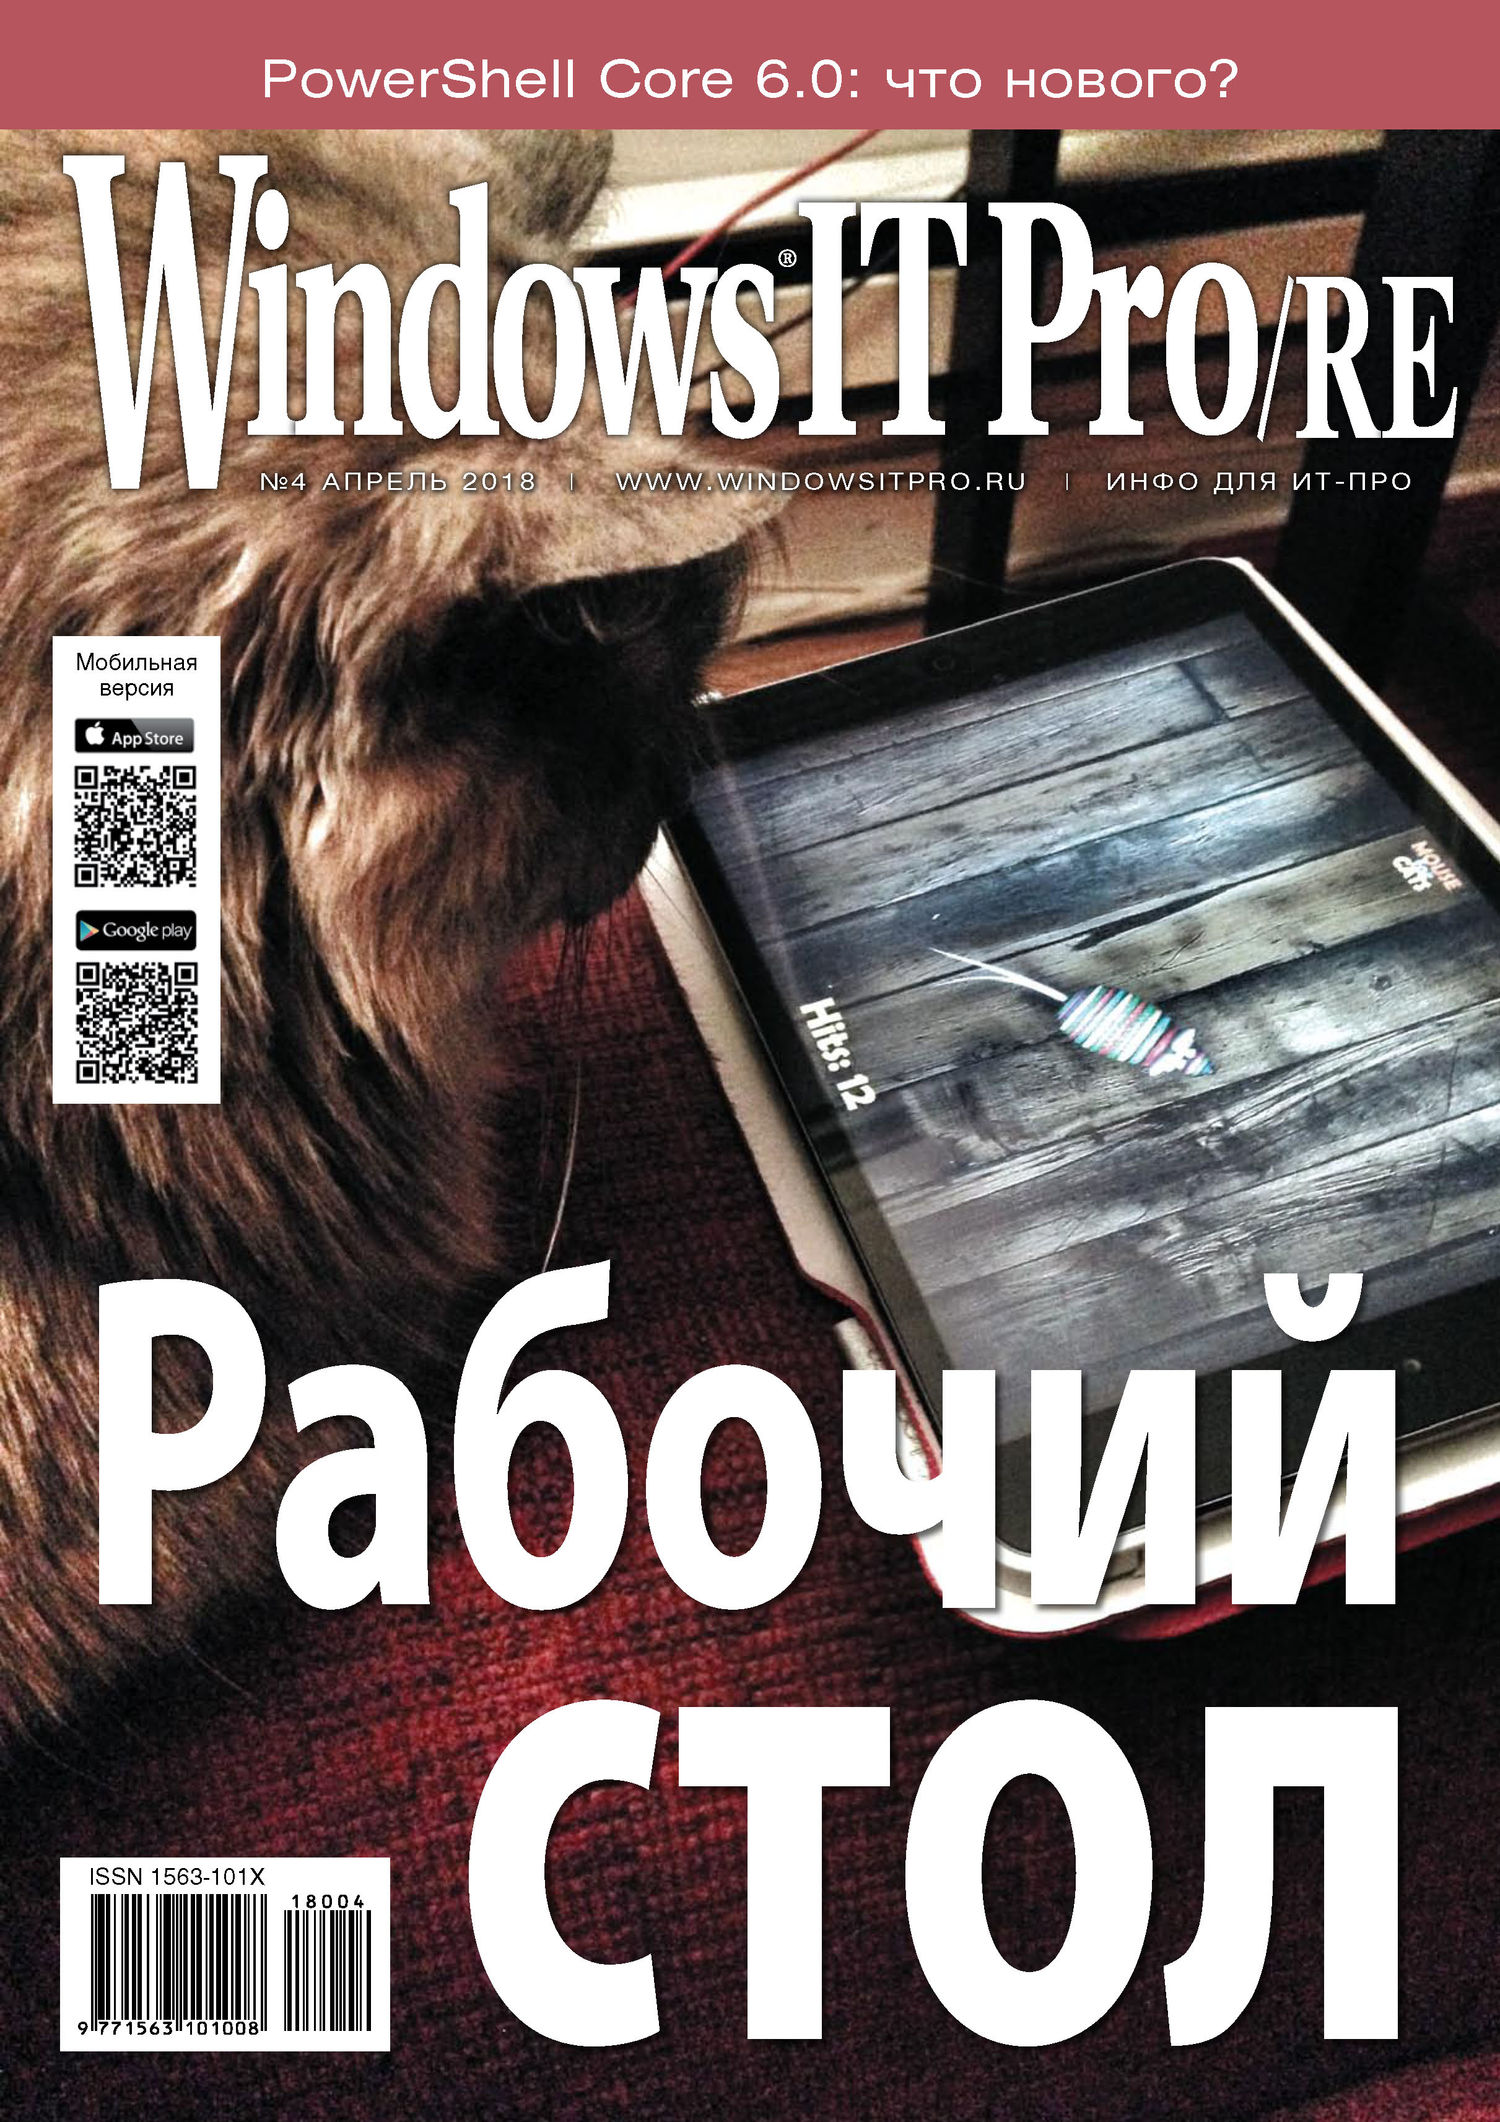 Windows IT Pro/RE №04/2018